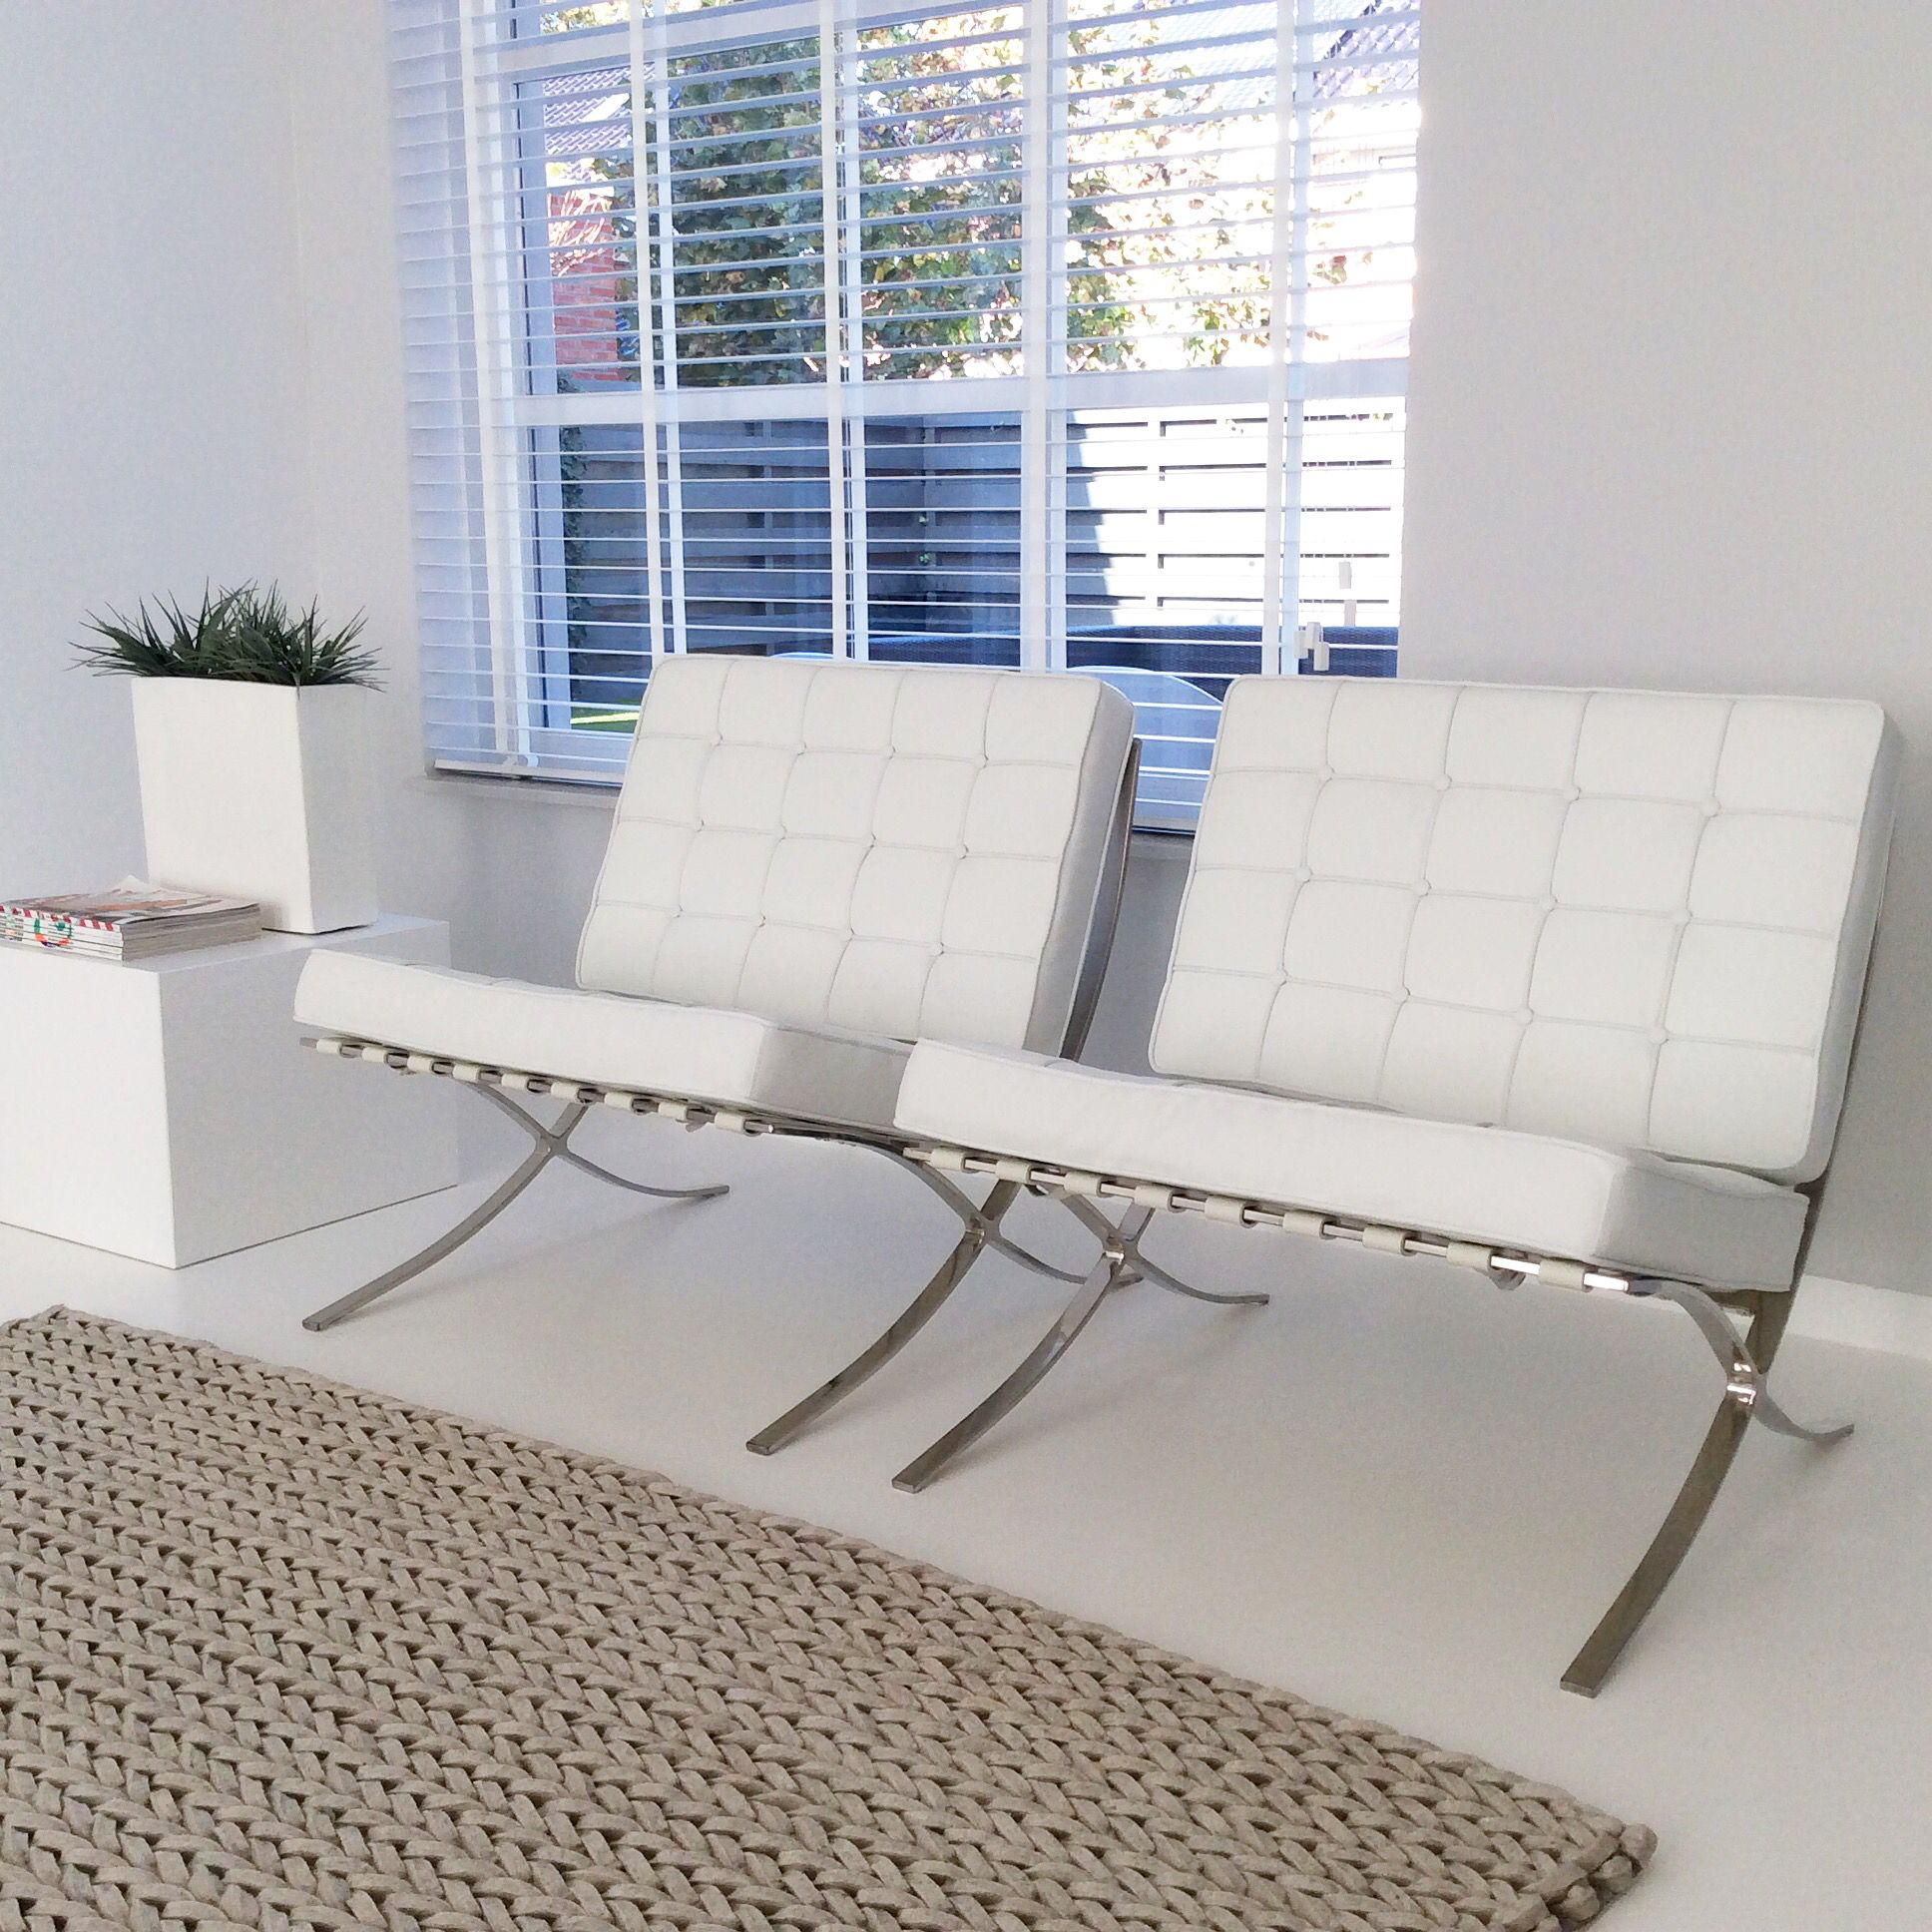 Barcelona chair white carpet grey grijs wit kleed wol